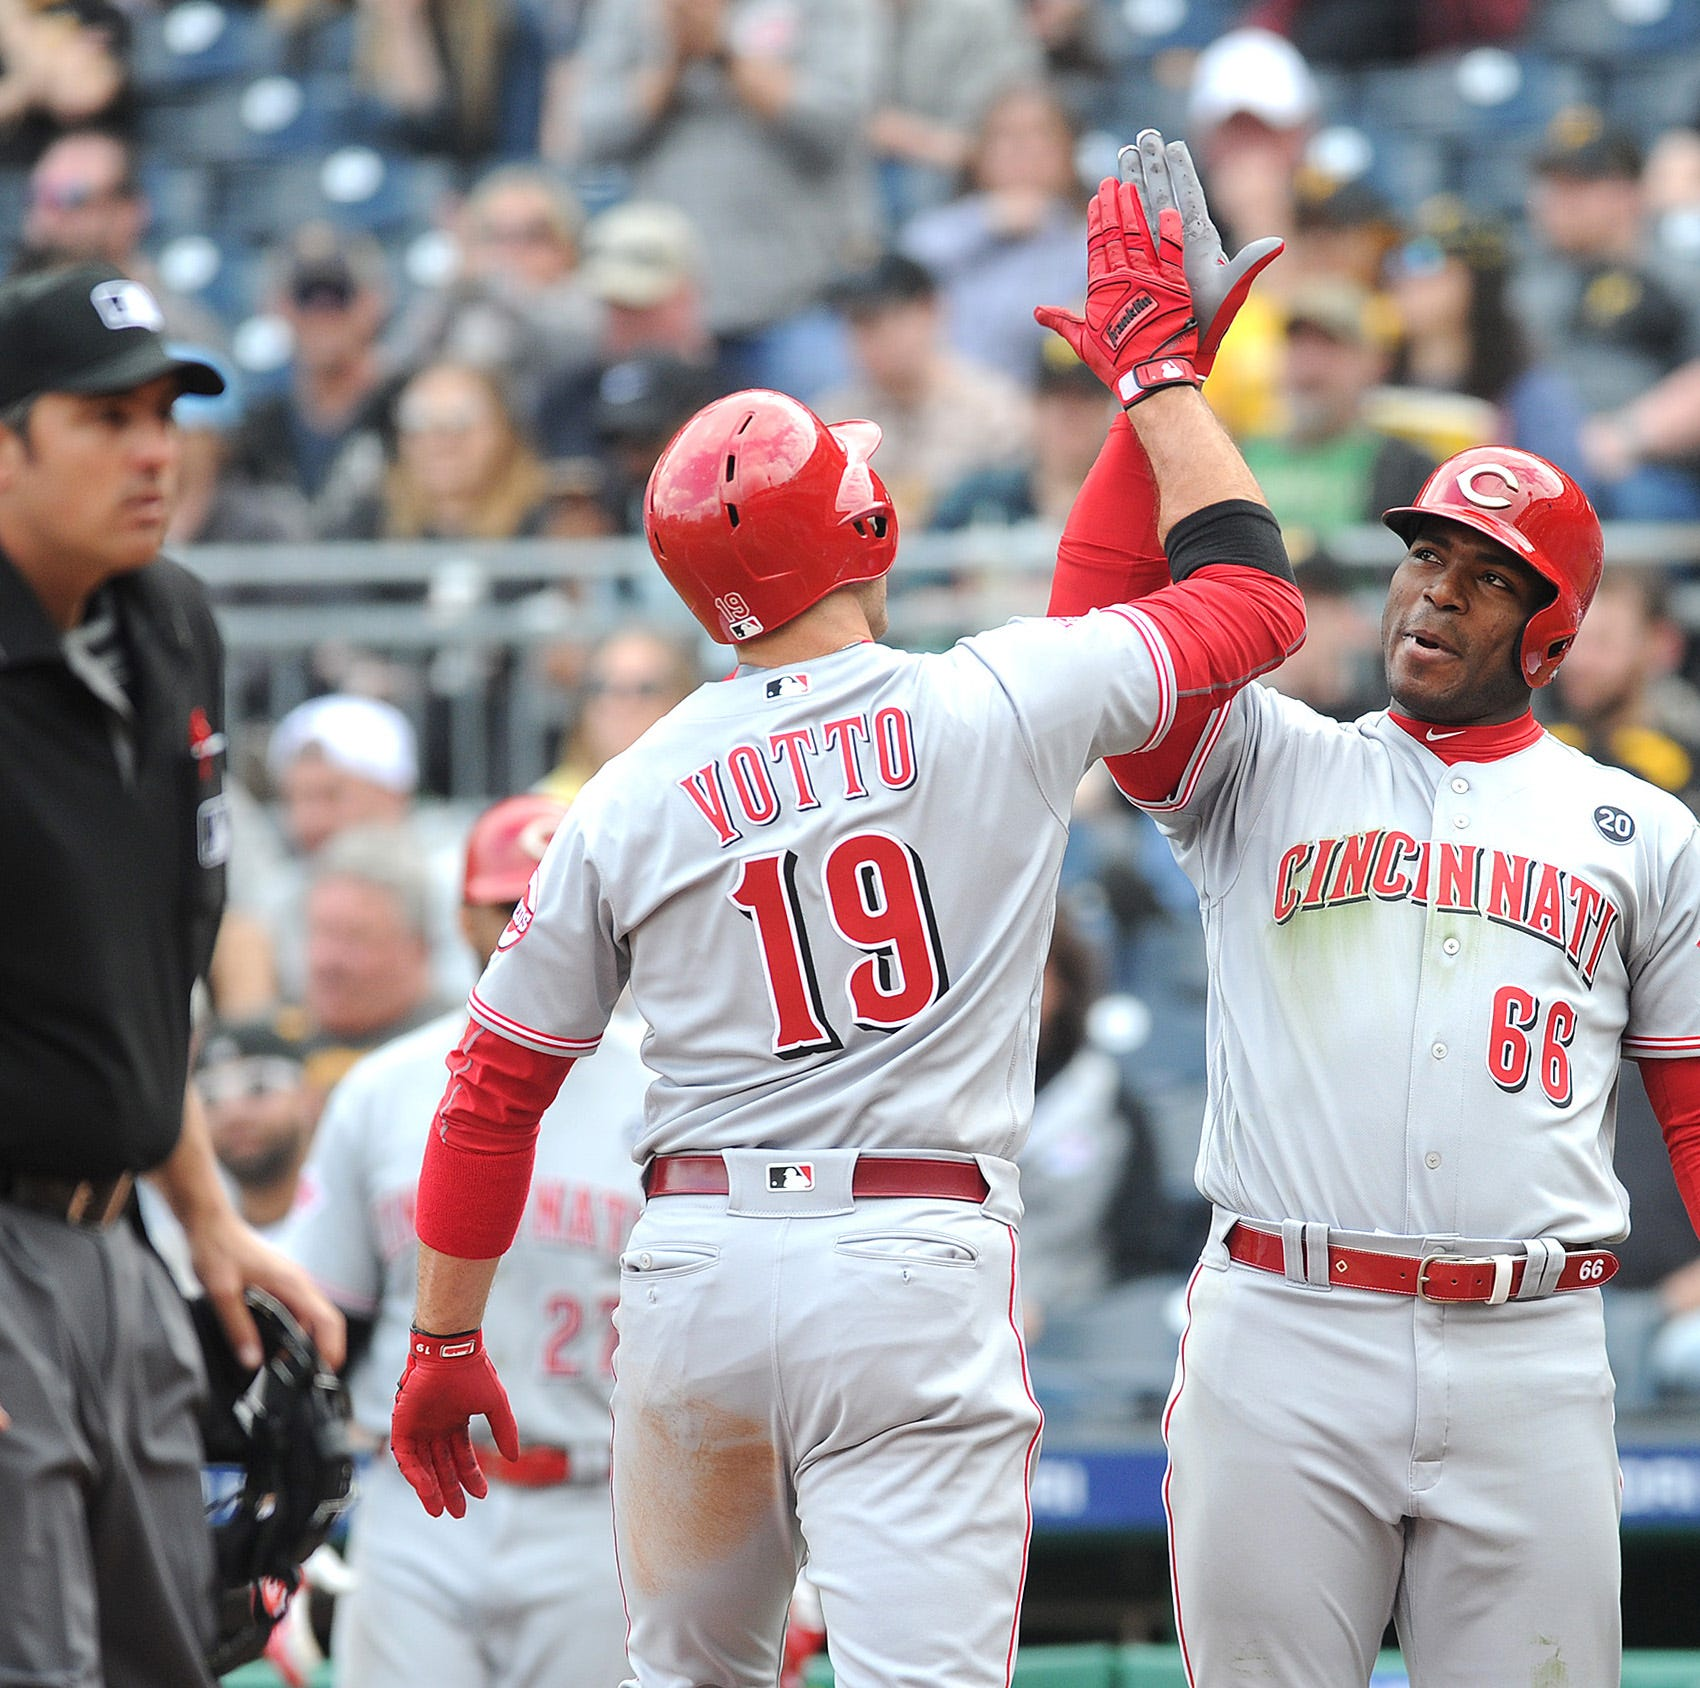 Yasiel Puig on Cincinnati Reds teammate Joey Votto: 'He's the best guy I've ever met'